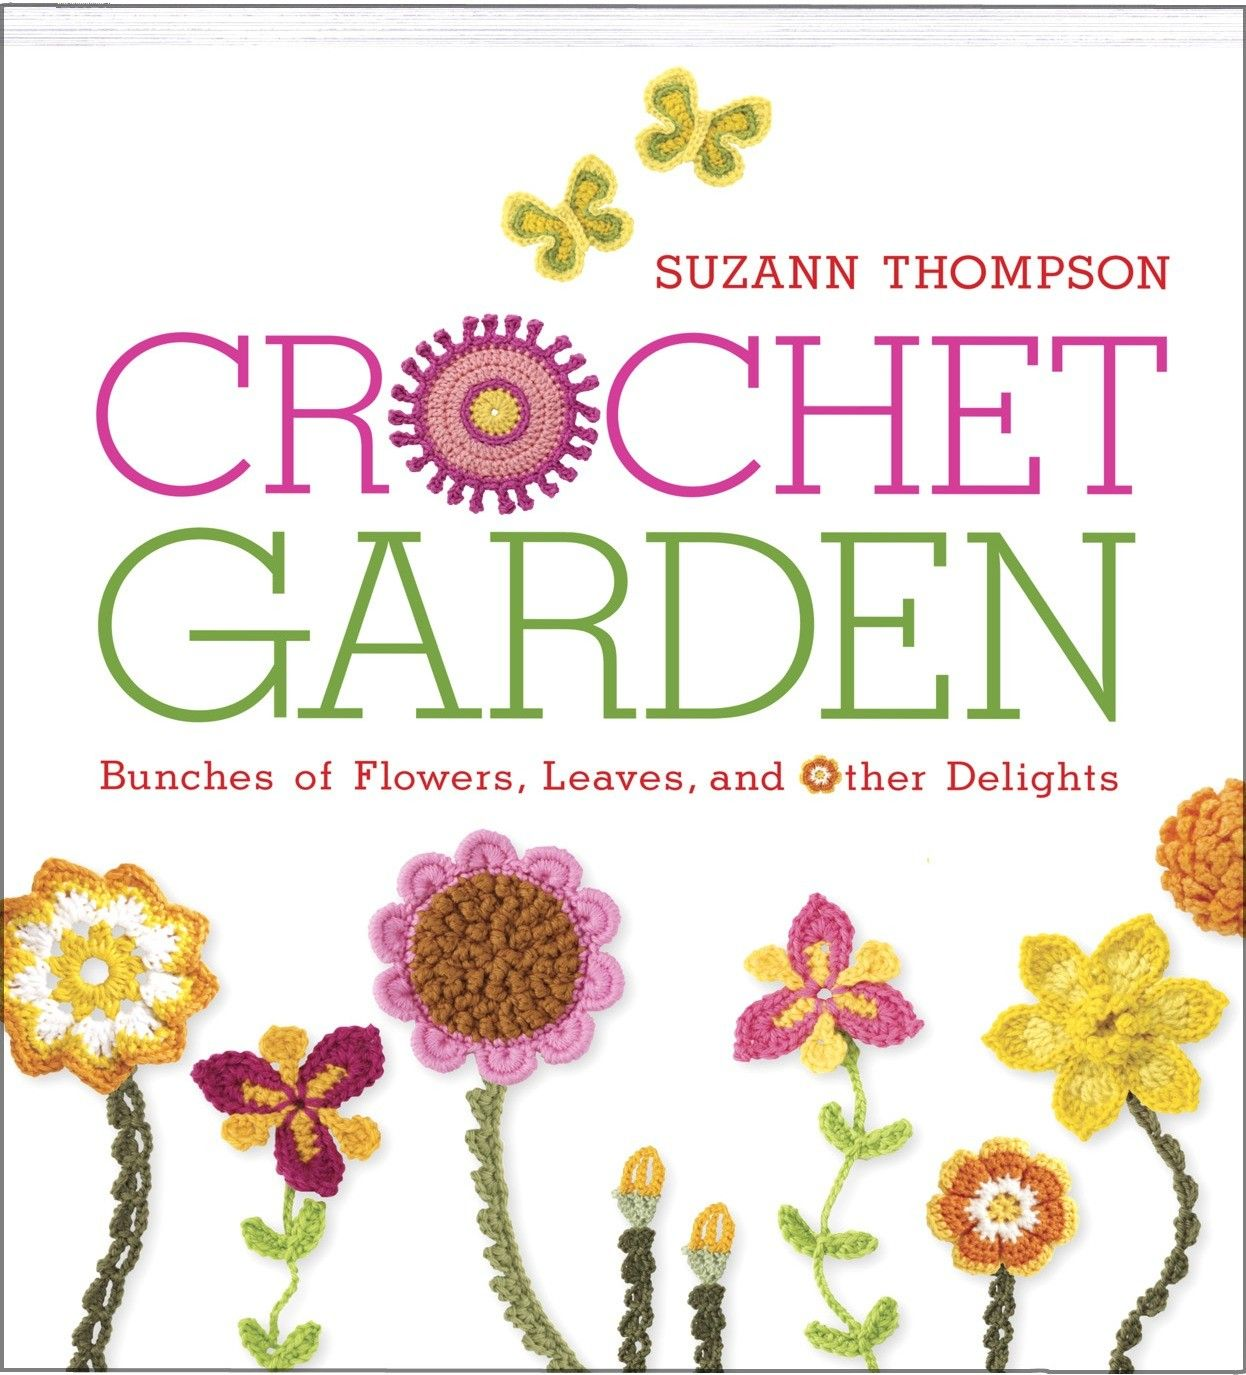 Crochet Garden - What can you do with crocheted flowers? Glue flowers to lampshades, refrigerator magnets, and scrapbook pages. Make pretty party invitations or unique personal stationery using your scanner and a color printer, says author of Crochet Garden Suzann Thompson.And that's just for starters. Her 50 botanically themed motifs are sure to make your imagination bloom. Use them to make lapel pins, barettes, key fobs and wreaths-or embellish anything you please. Beyond realistic-looking…